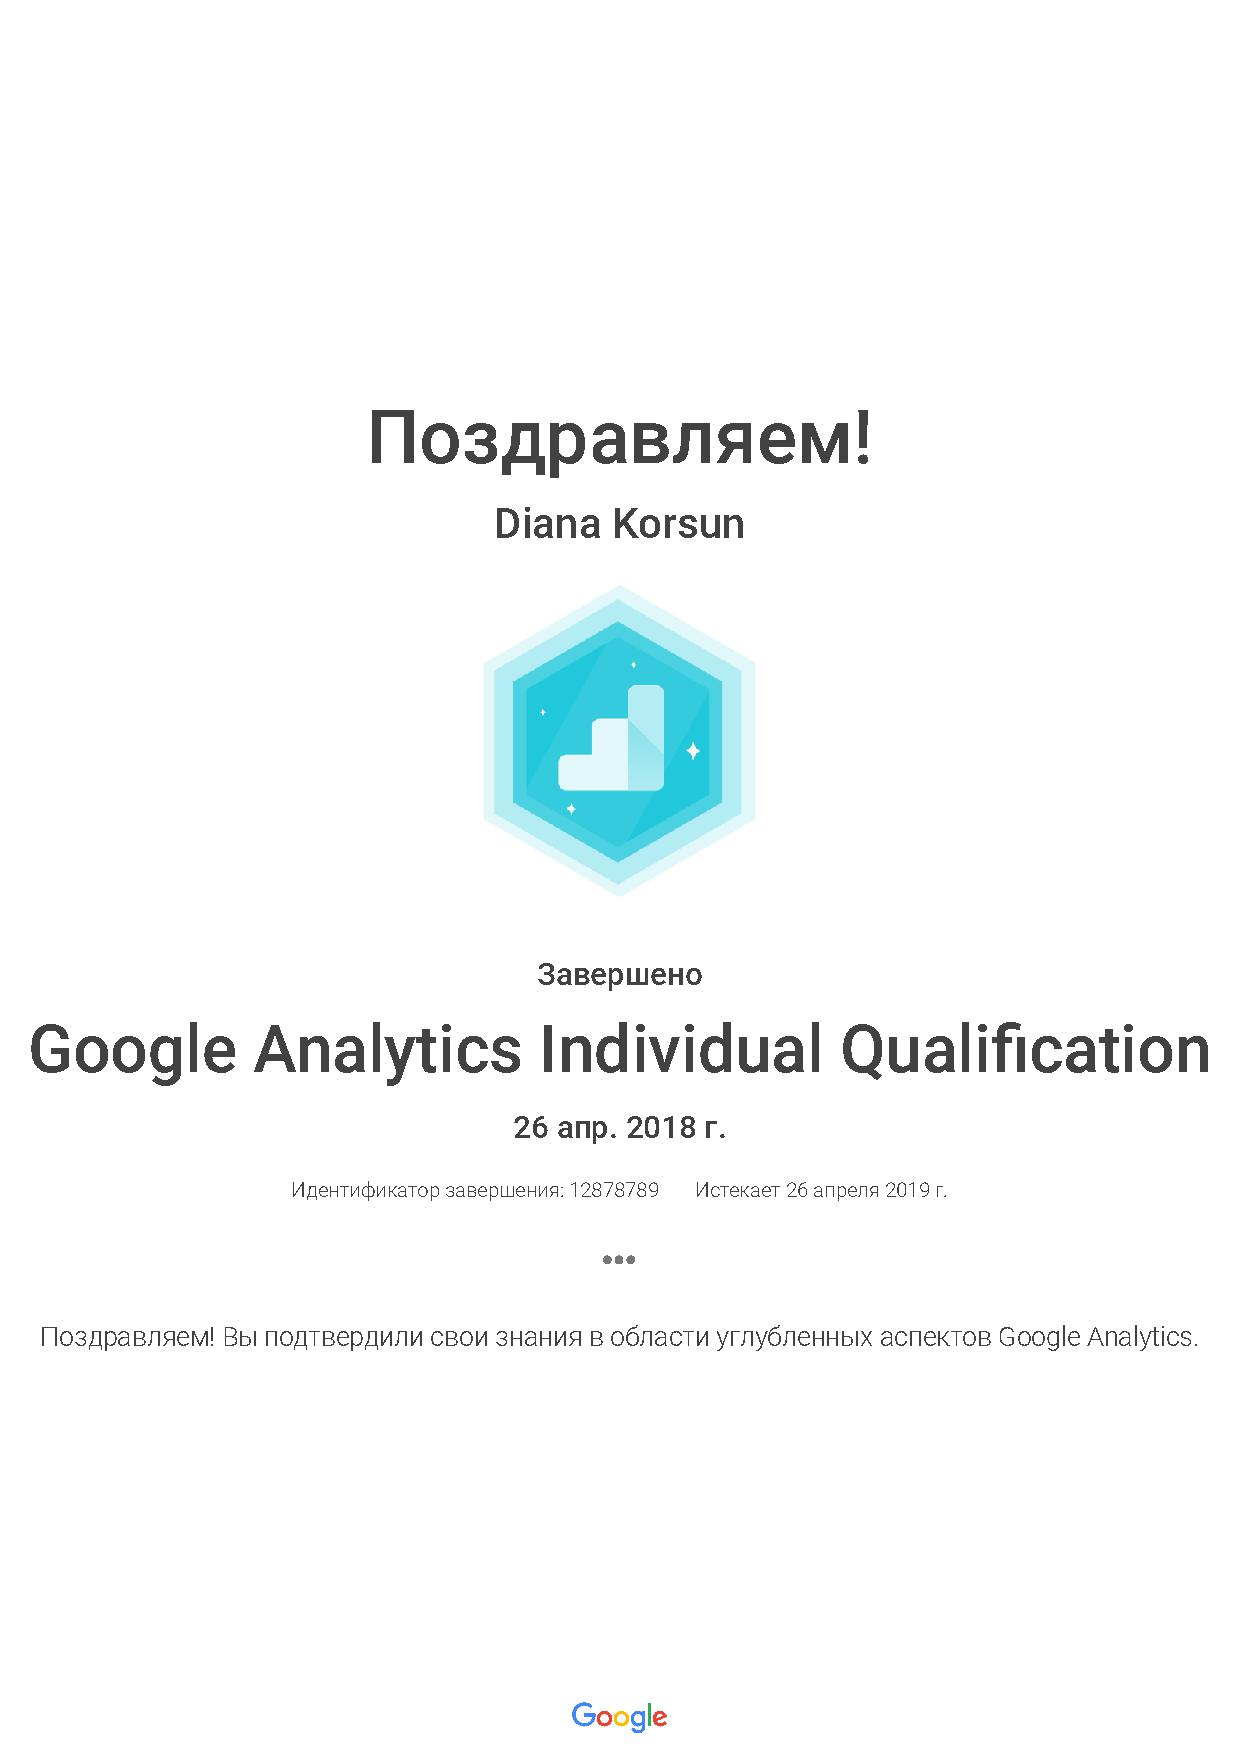 abbi — Google Analytics